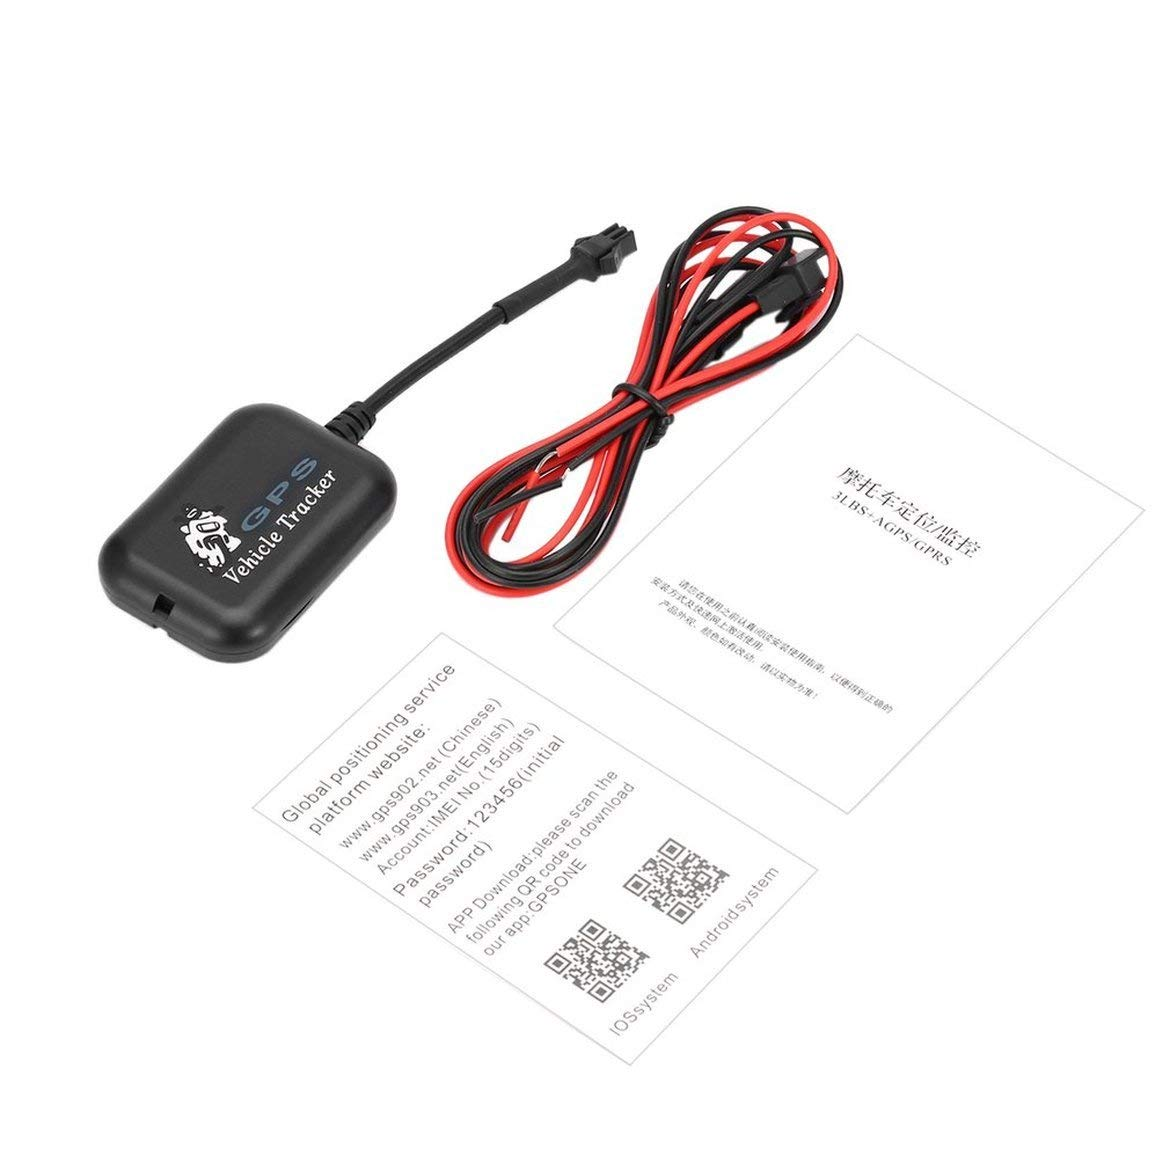 Mini GSM GPRS SMS GPS Tracker Quad-band Real Time Global Location Tracking Device for Car Vehicle Motorcycle Scooter